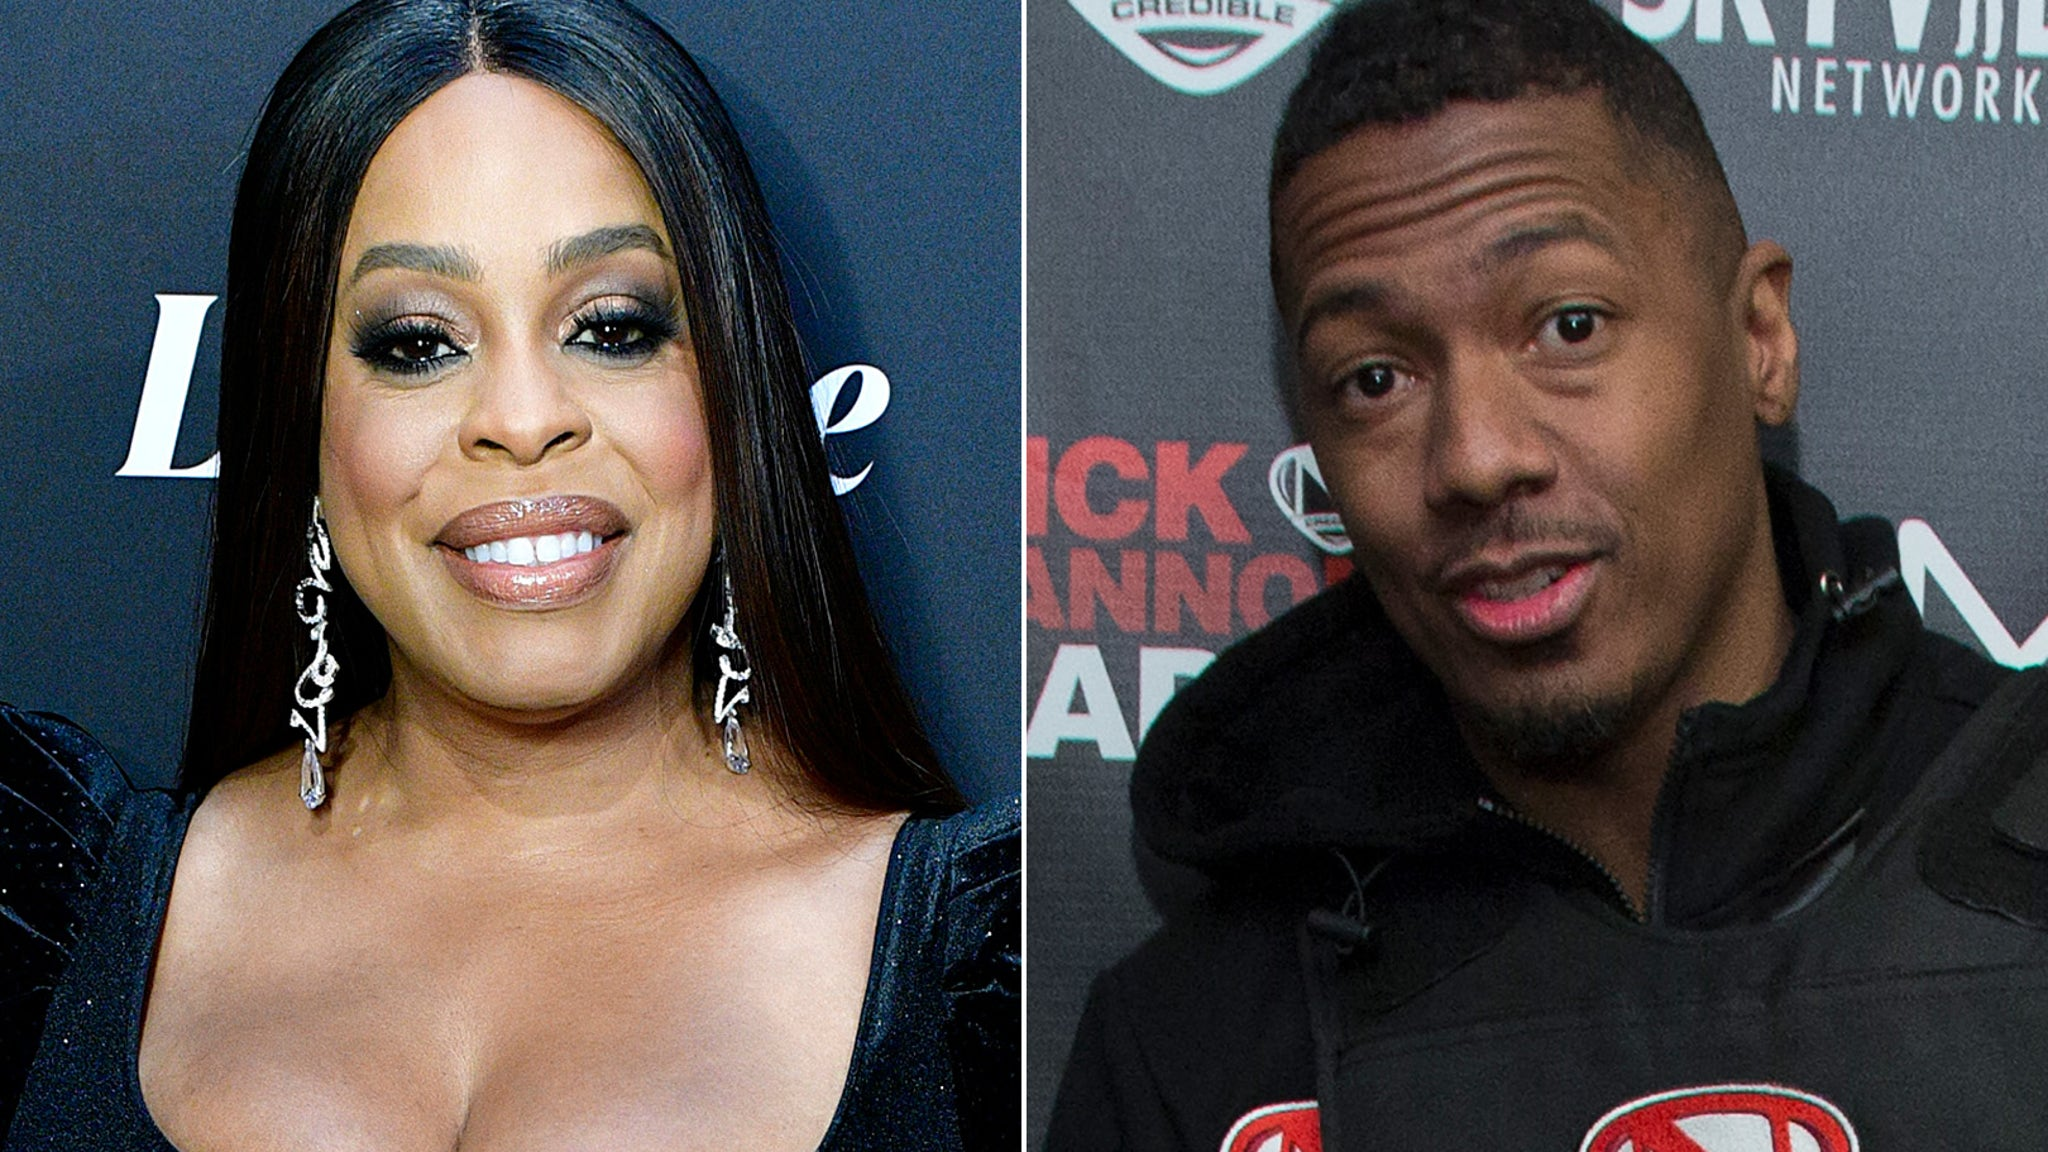 Nick Cannon Replaced by Niecy Nash on Masked Singer Following Positive Covid Diagnosis - TooFab